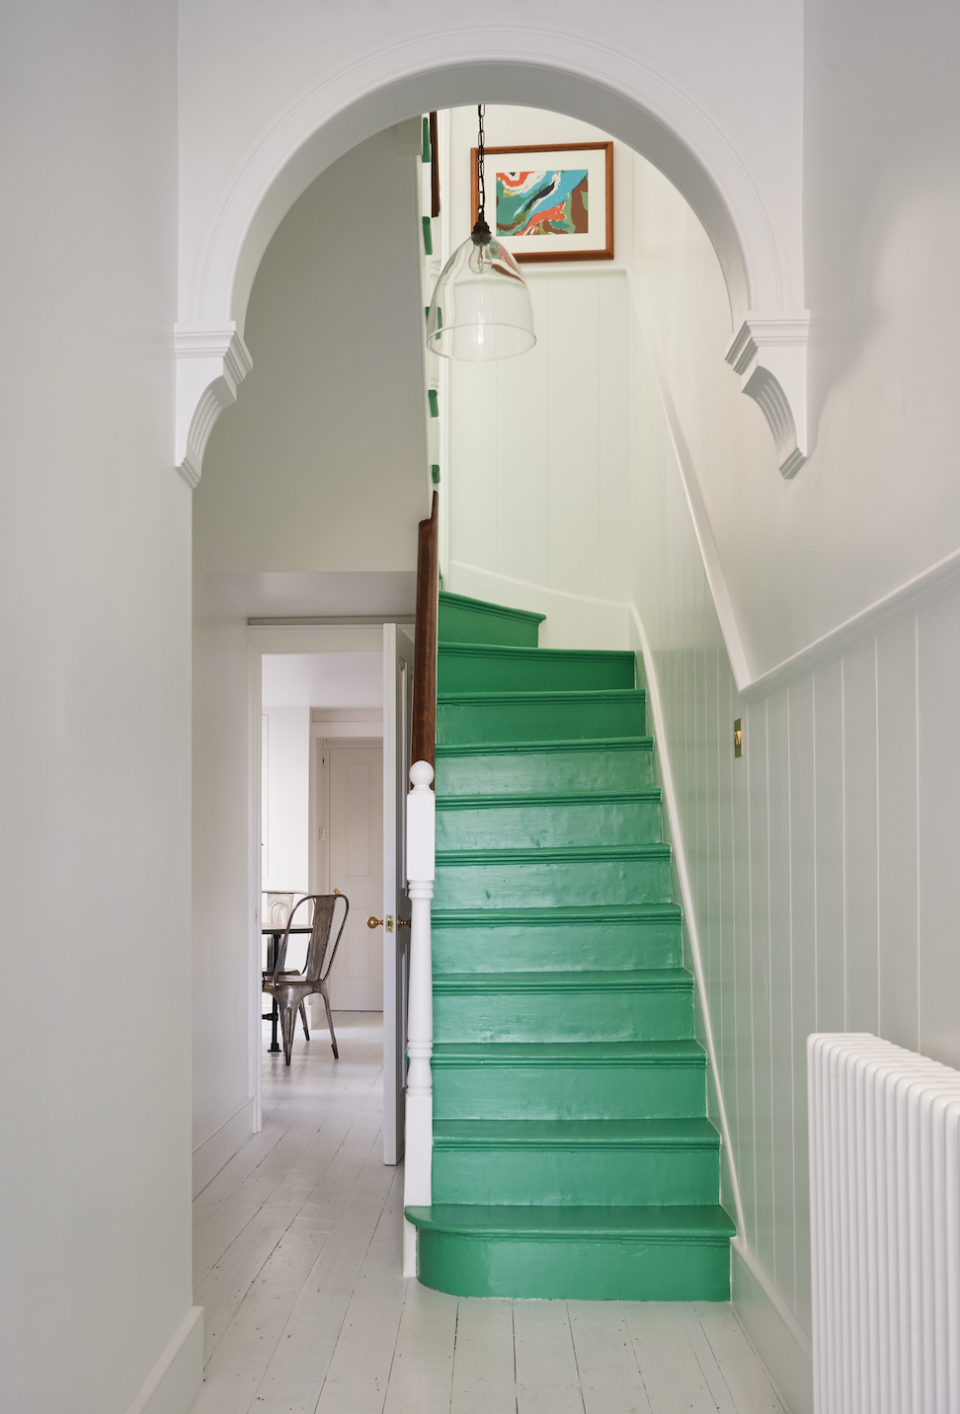 <p>London-based designer Olivia Outred brings a fresh, vibrant pop of color in this otherwise monochromatic entry. A rich green in a warm and inviting hue is the perfect welcome for guests as they pass the threshold into your home. An abstract painting at the top of the stairs and delightful architectural details tie this charming space together. </p>